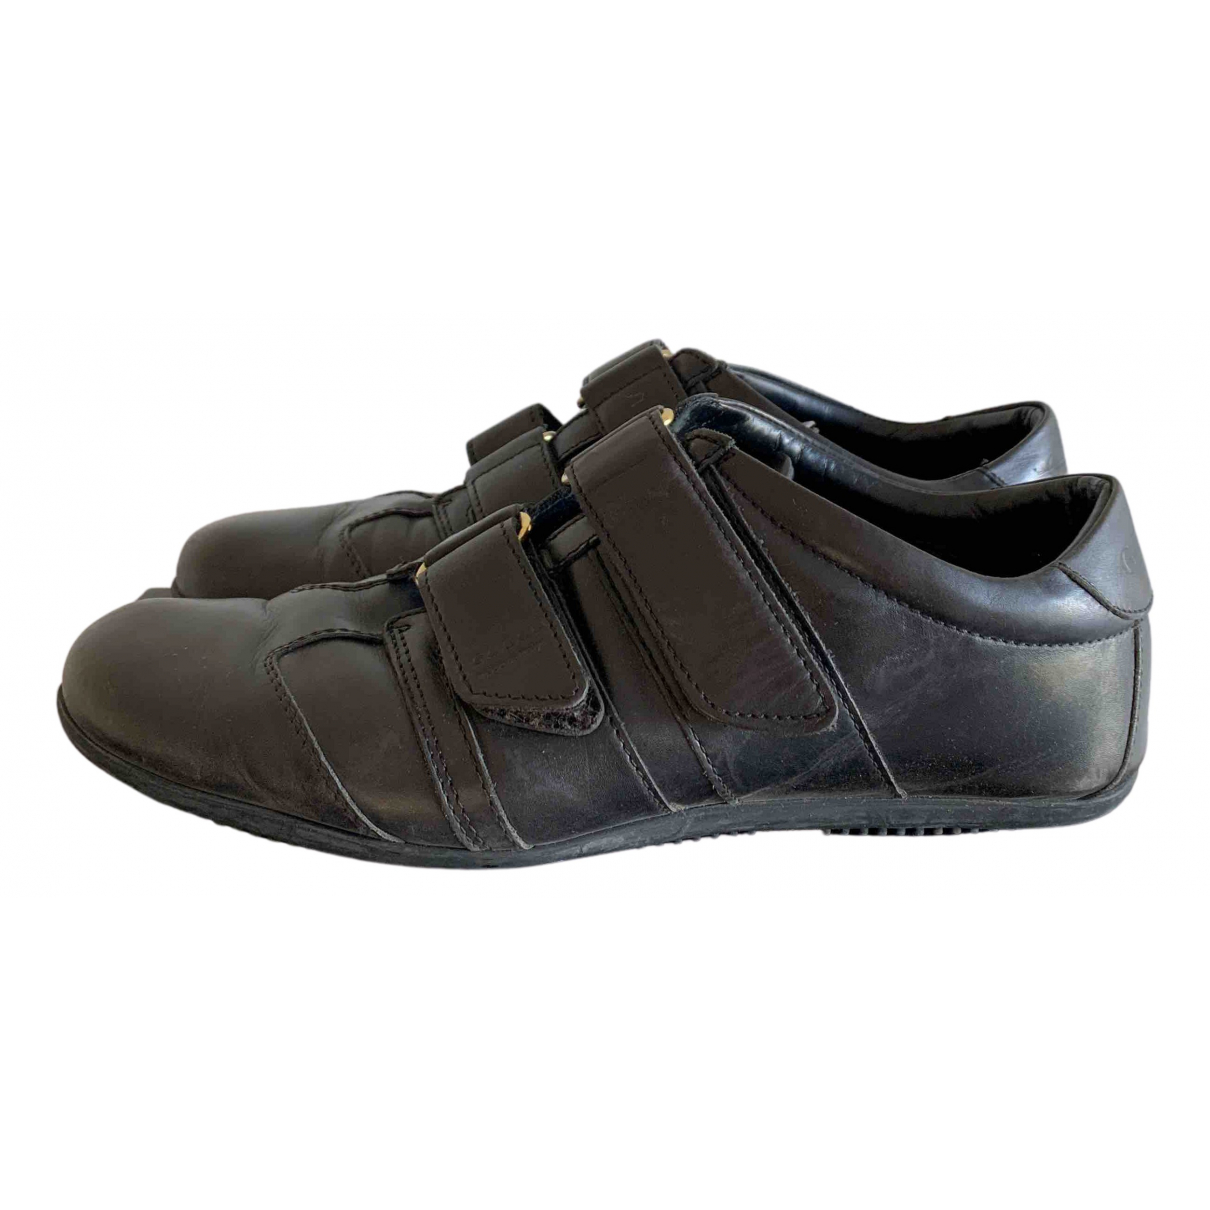 Gucci N Black Leather Trainers for Women 38 EU